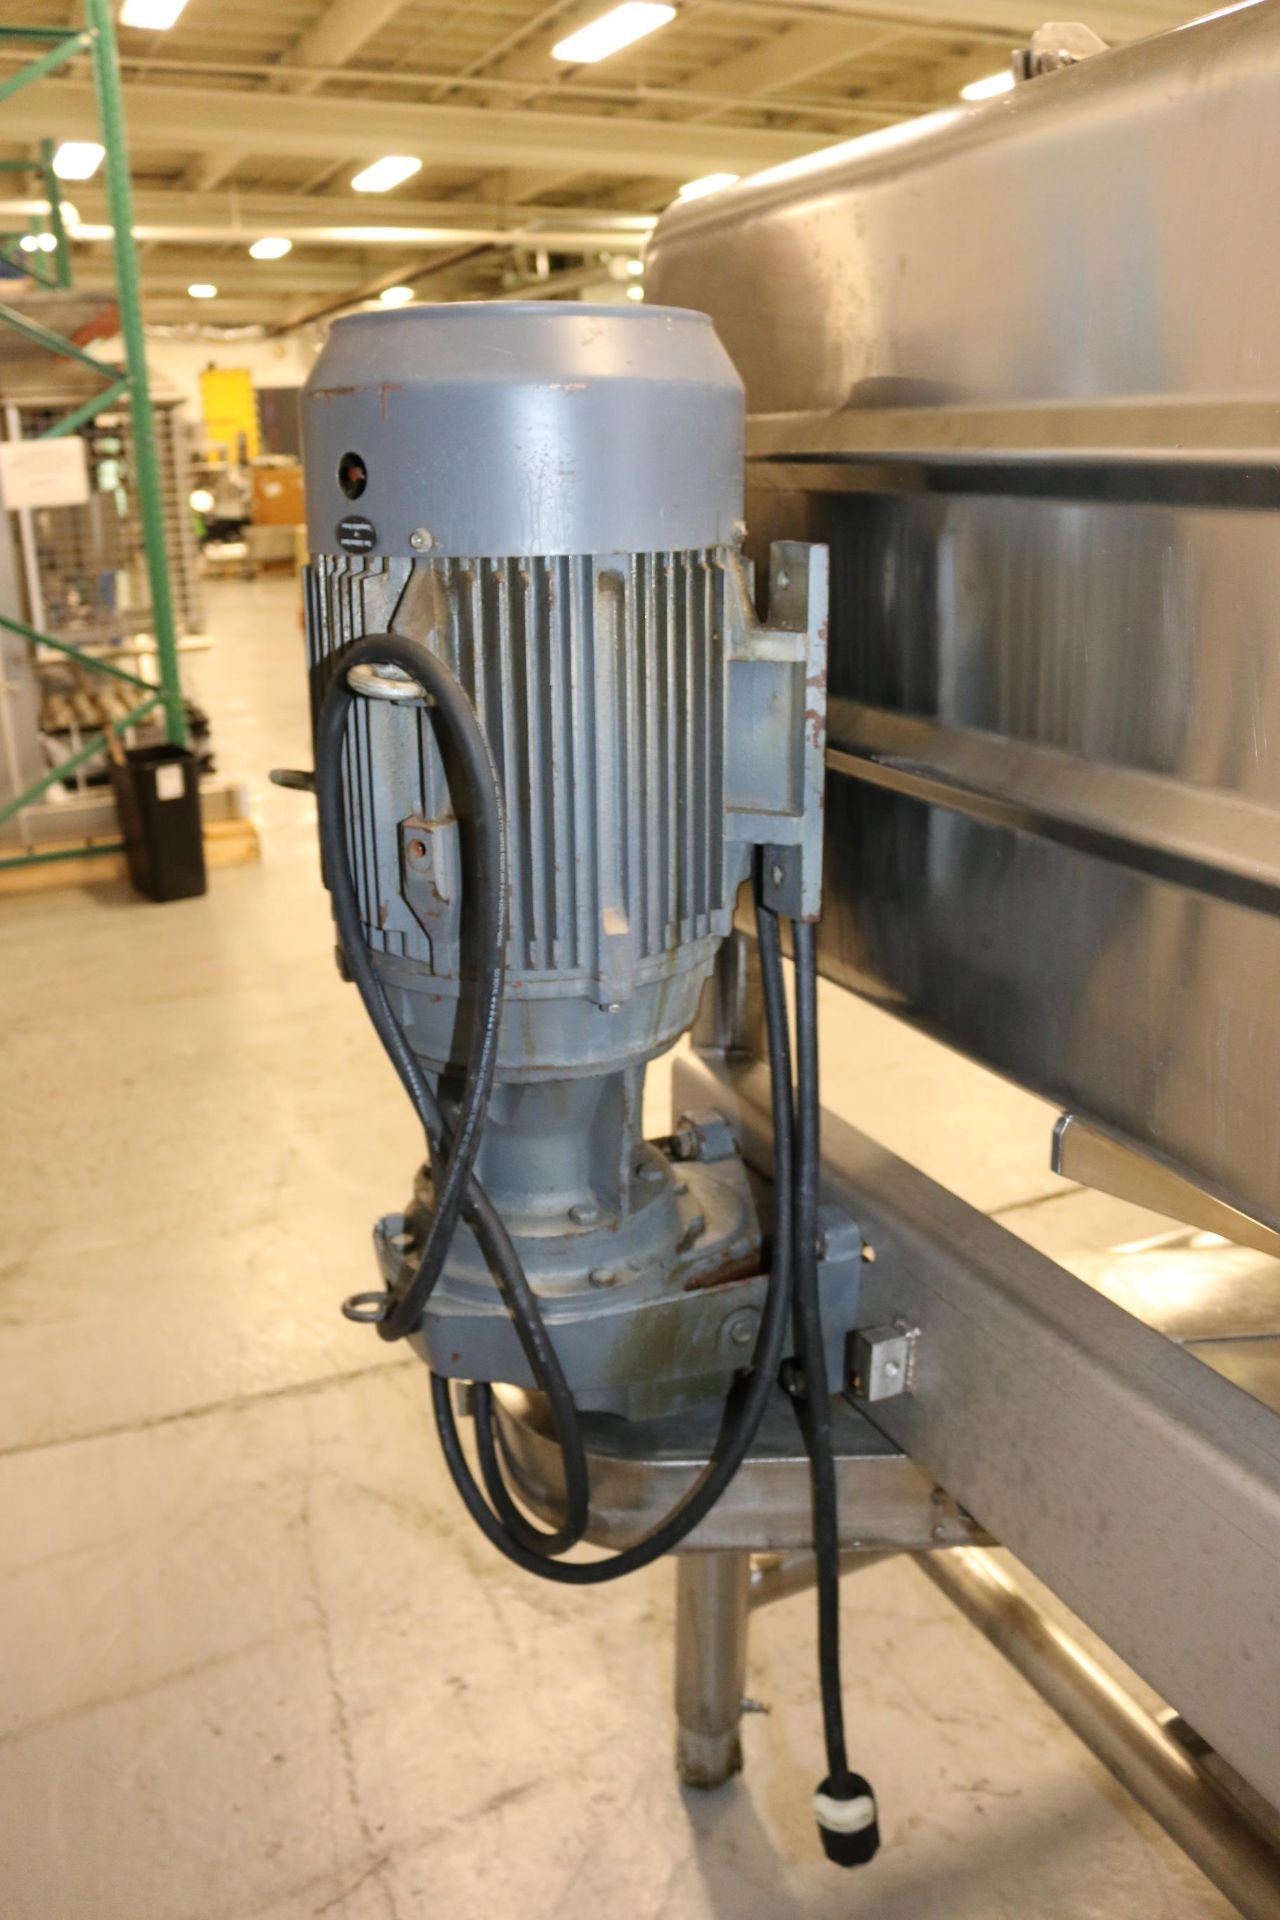 Lot 37 - Norman 250 Gal. S/S Likwifier, M/N DS 250, S/N 546, with Side Mounted 15 hp Motor, 1760 RPM, Mounted